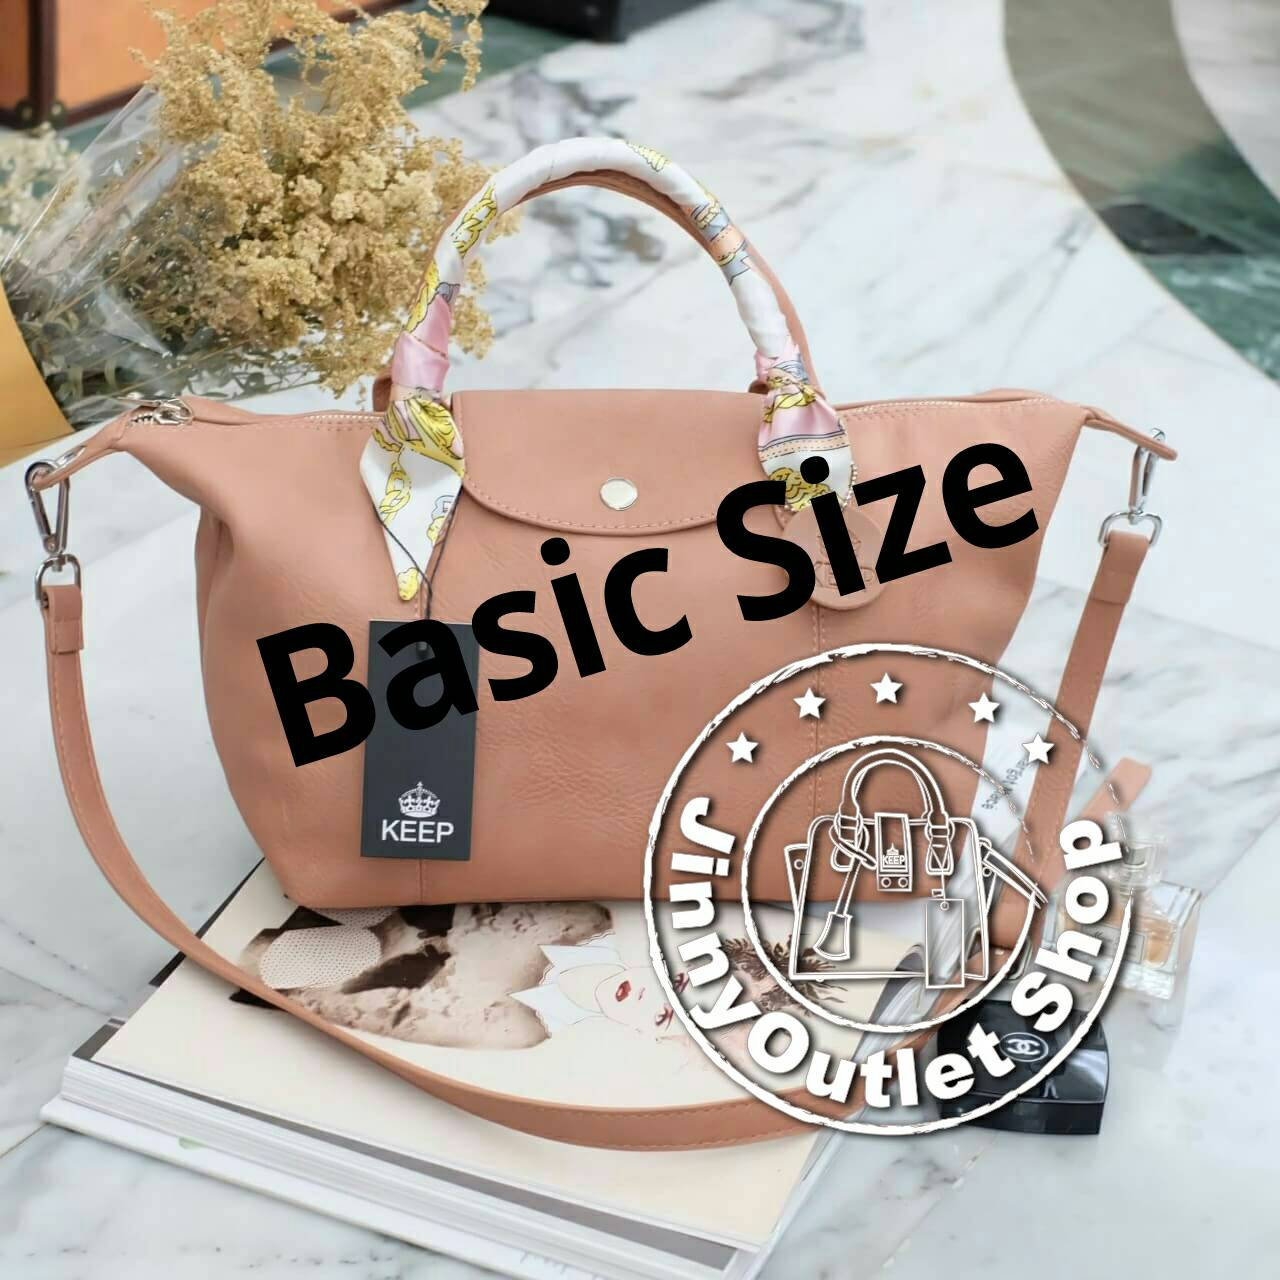 KEEP ( Longchamp - Duo Sister ) / Basic Size